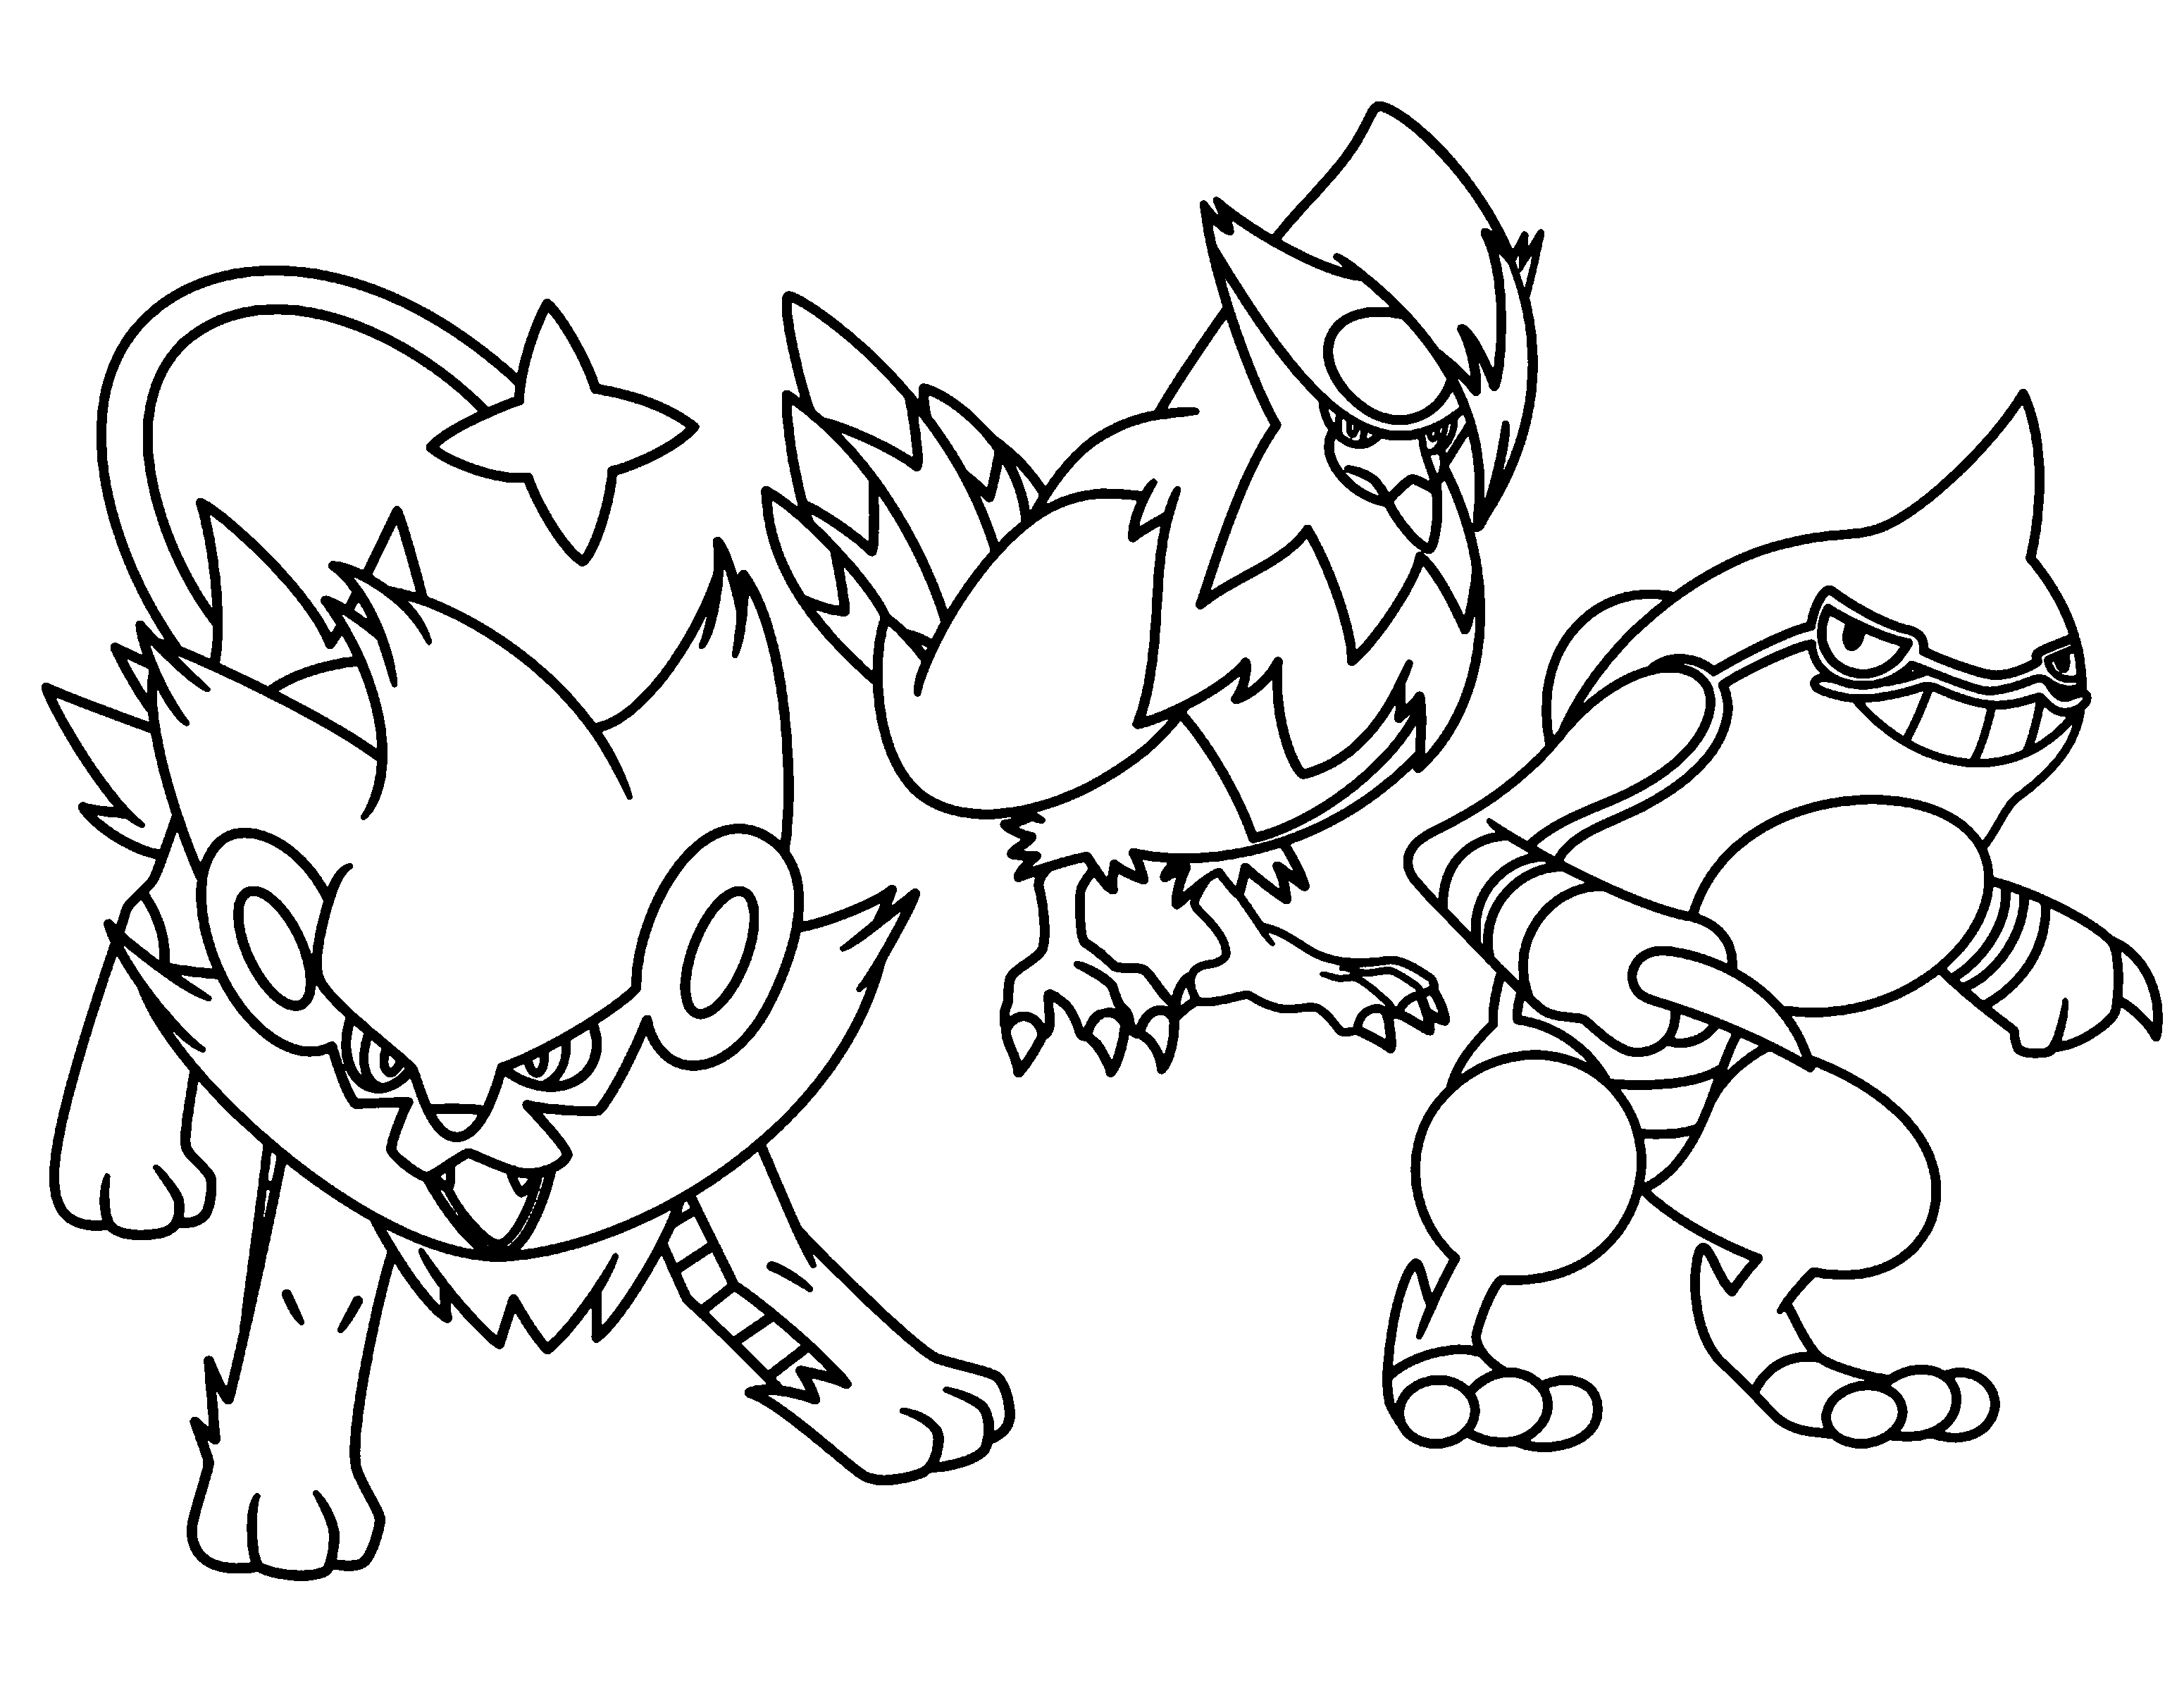 colouring in pokemon pokemon coloring pages join your favorite pokemon on an pokemon colouring in